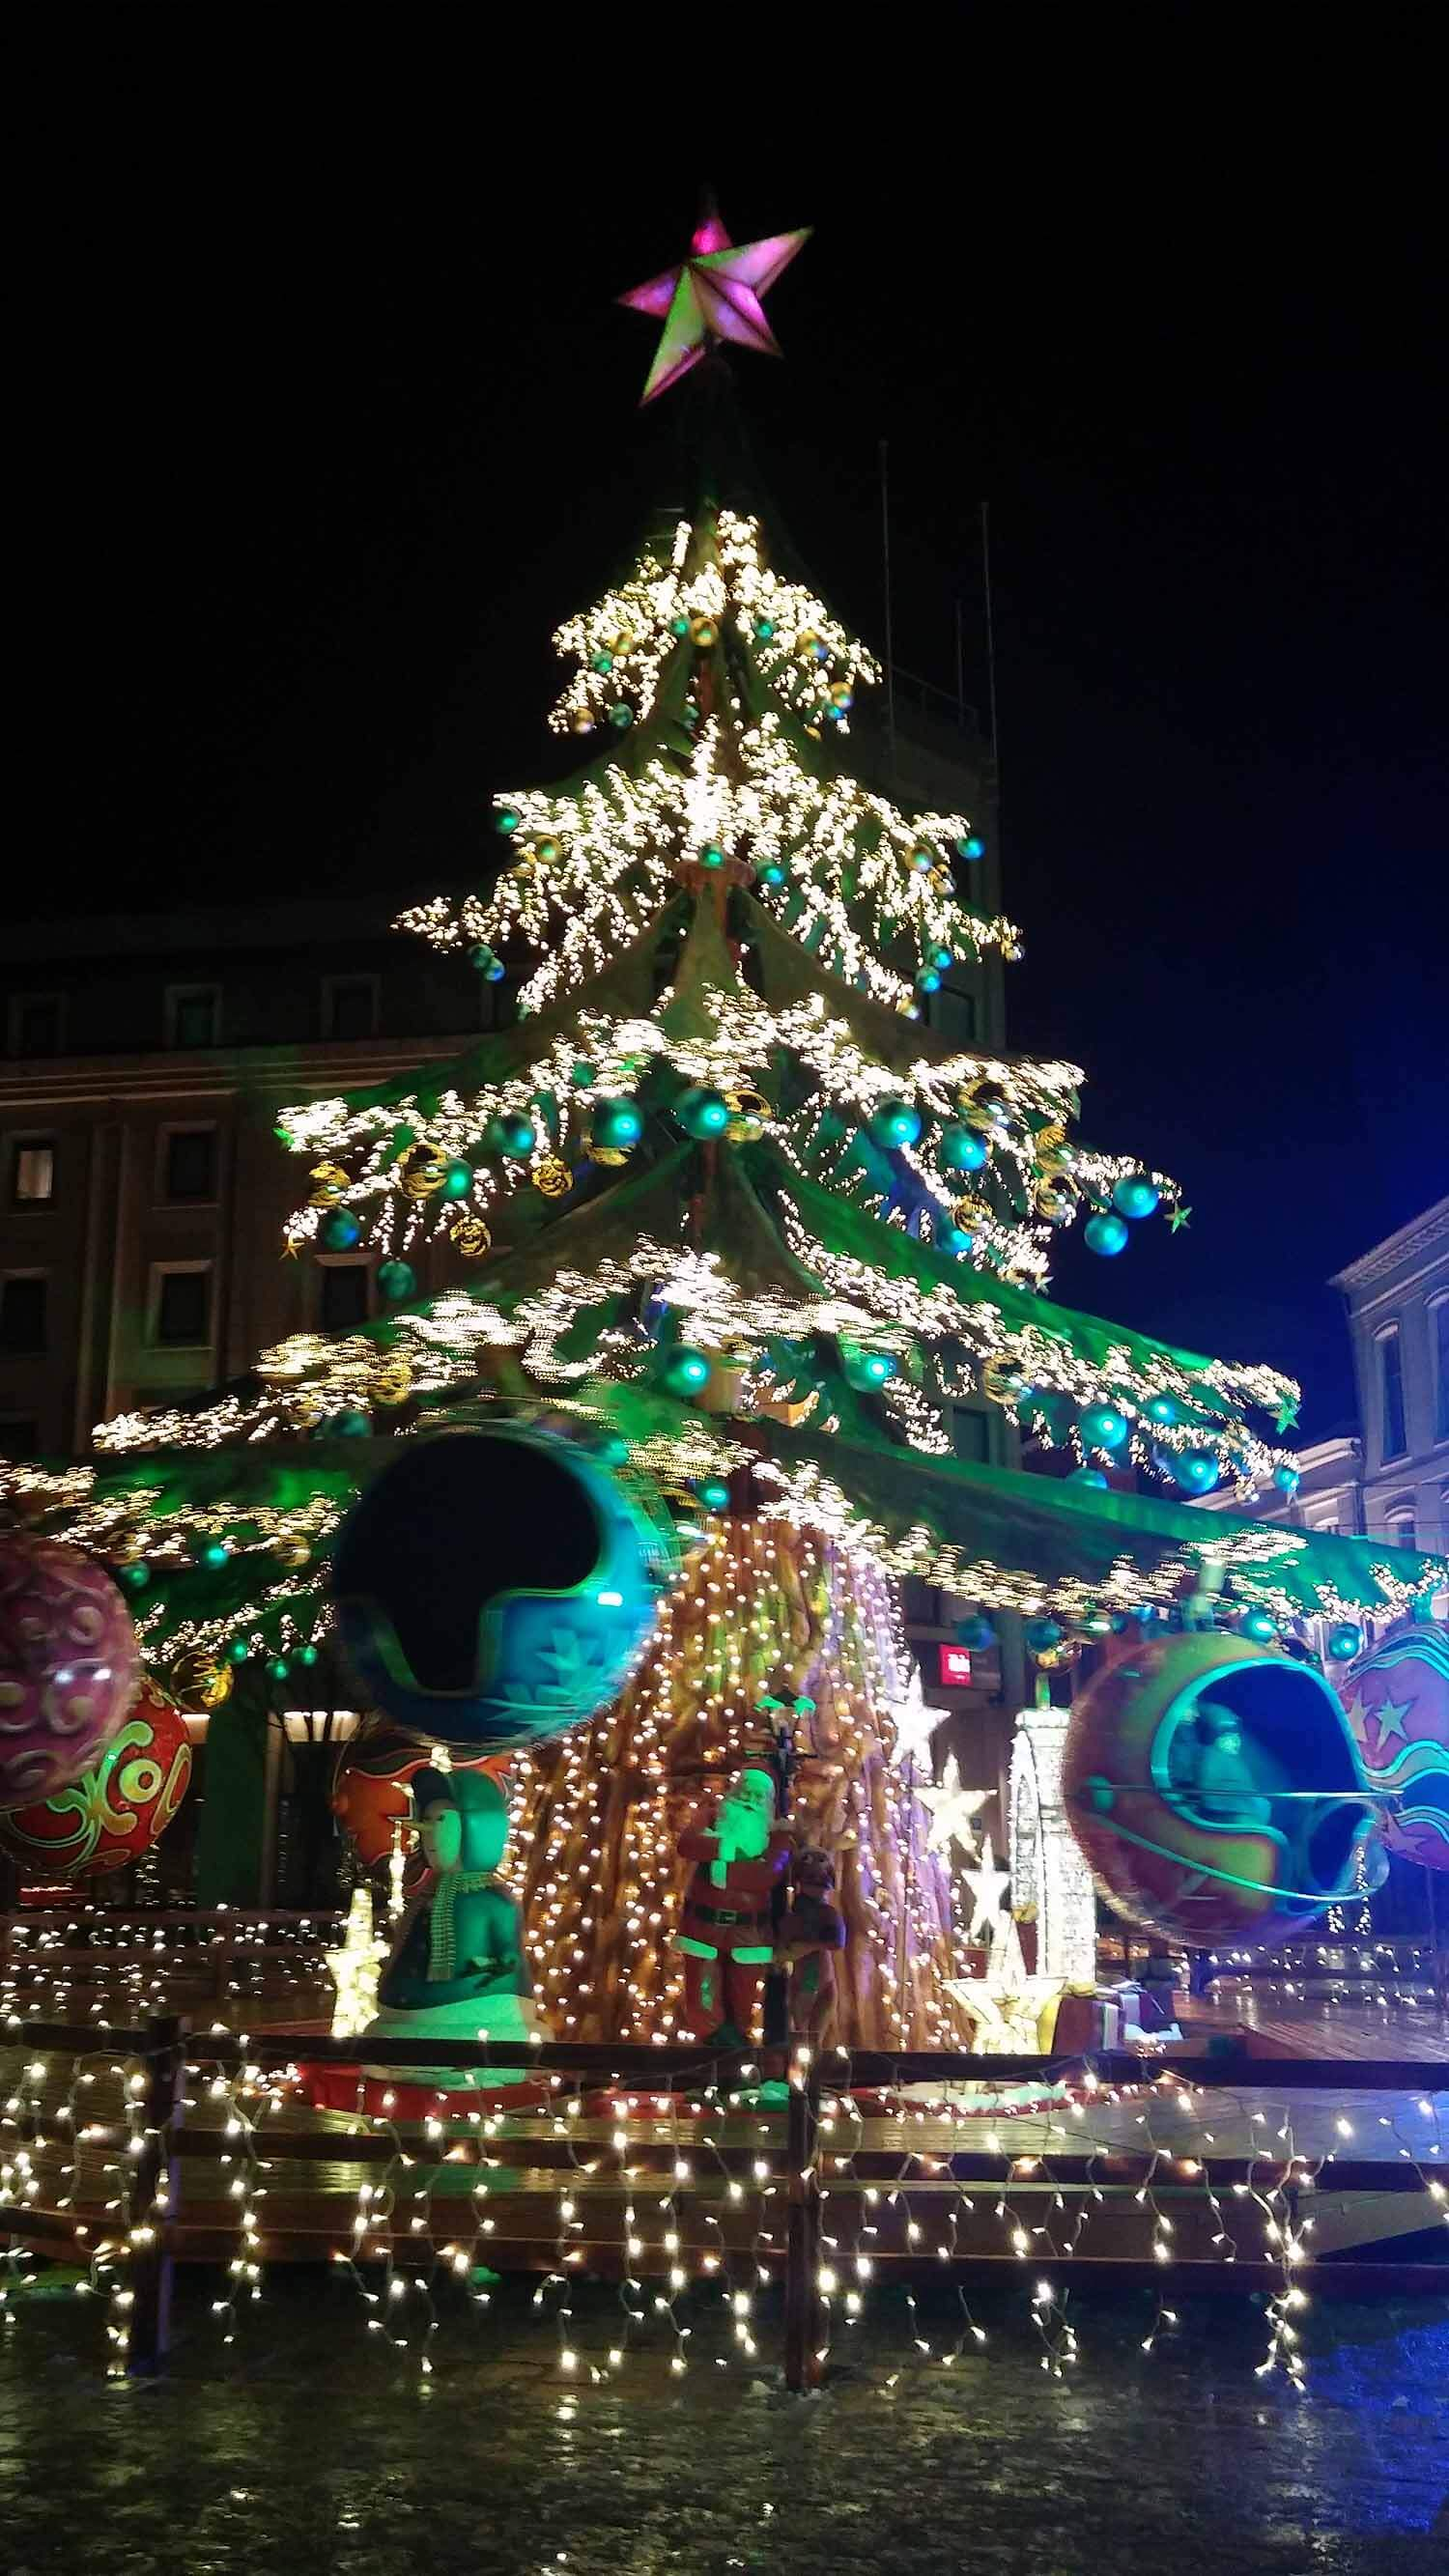 belgium-ghent-christmas-tree-holiday-market.jpg